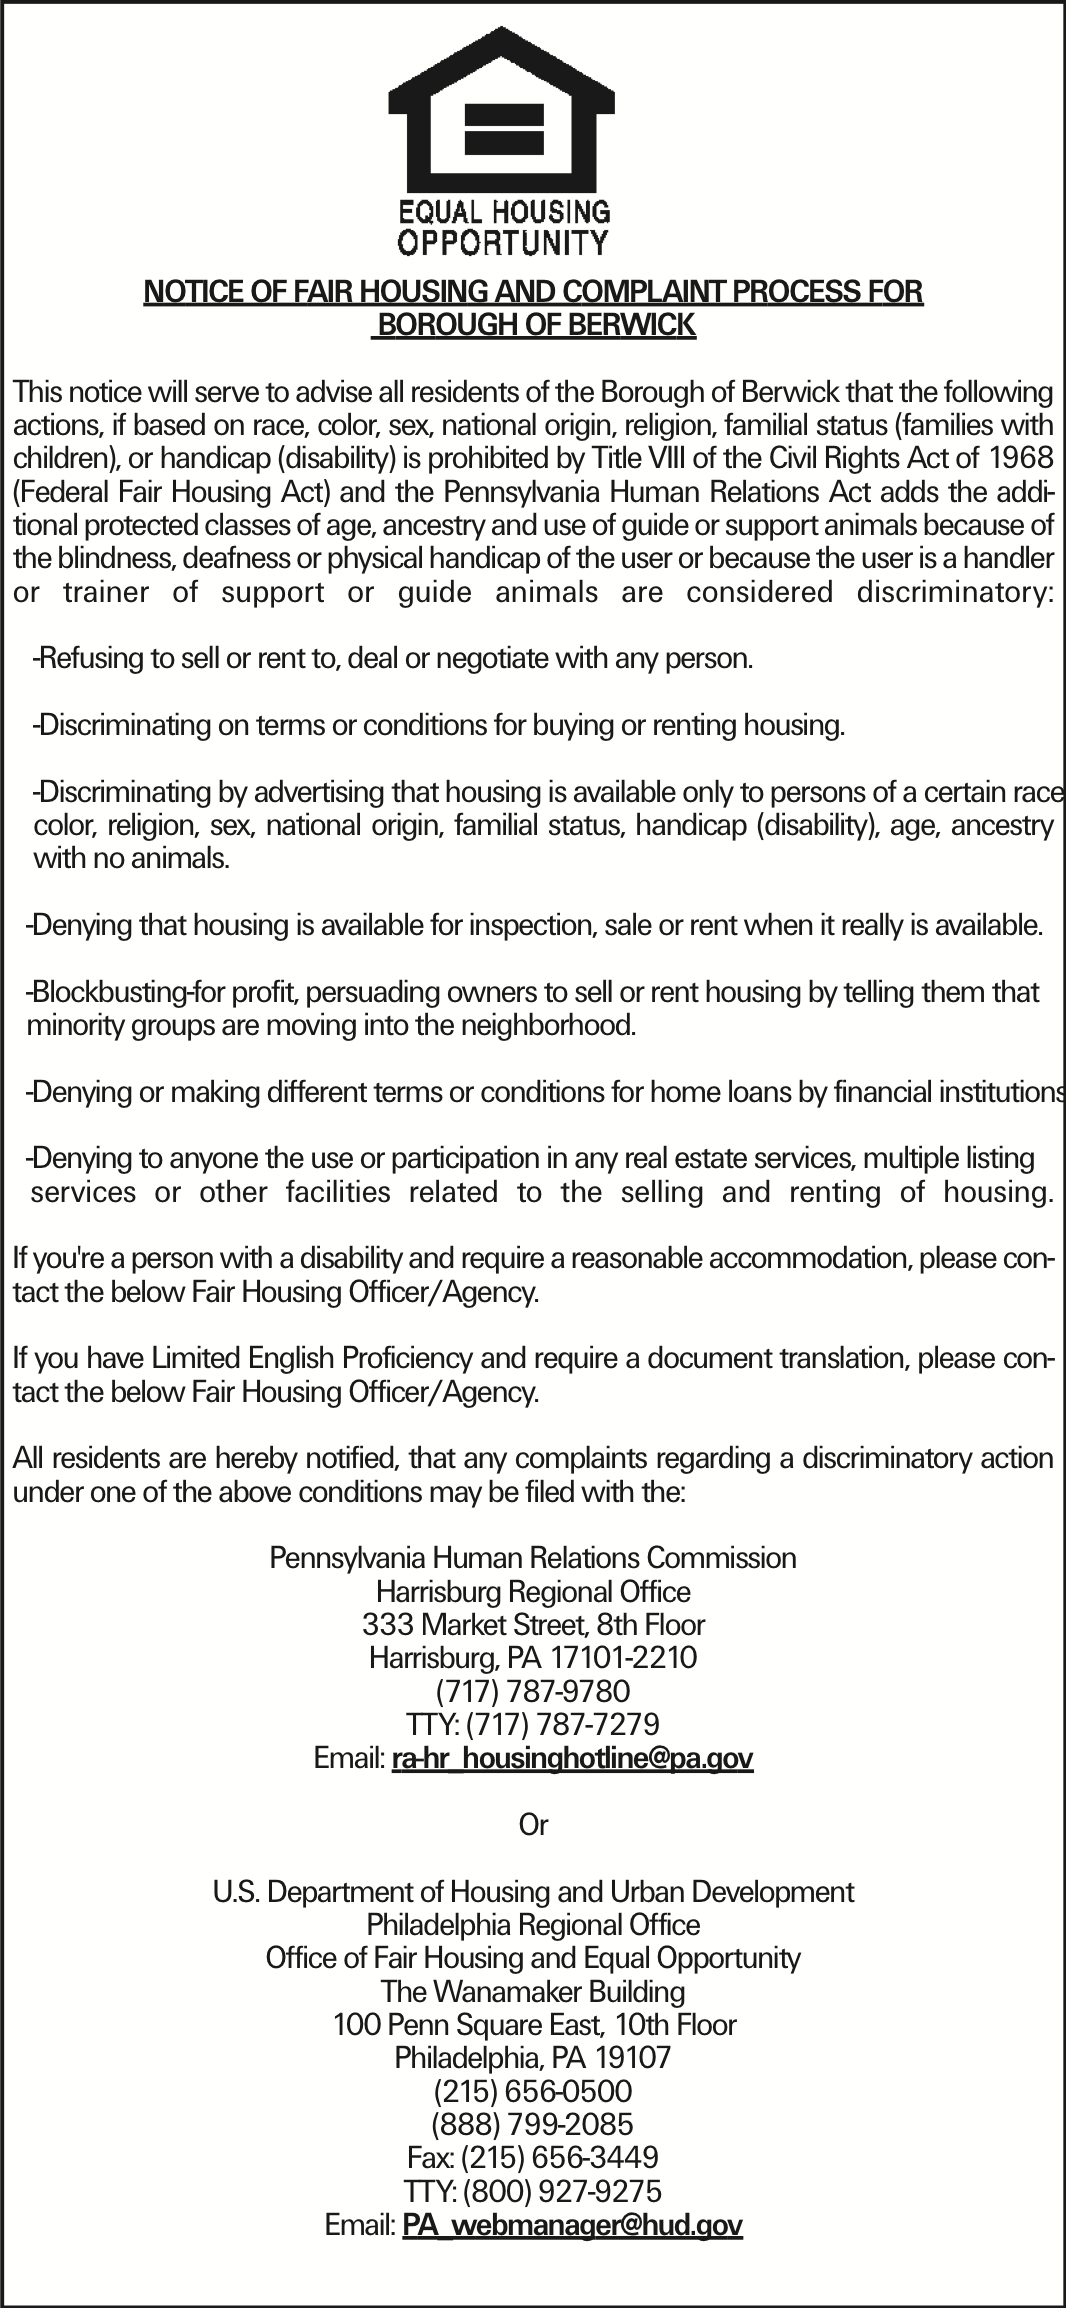 NOTICE OF FAIR HOUSING AND COMPLAINT PROCESS FOR BOROUGH OF BERWICK This notice will serve to advise all residents of the Borough of Berwick that the following actions, if based on race, color, sex, national origin, religion, familial status (families with children), or handicap (disability) is prohibited by Title VIII of the Civil Rights Act of 1968 (Federal Fair Housing Act) and the Pennsylvania Human Relations Act adds the additional protected classes of age, ancestry and use of guide or support animals because of the blindness, deafness or physical handicap of the user or because the user is a handler or trainer of support or guide animals are considered discriminatory: -Refusing to sell or rent to, deal or negotiate with any person. -Discriminating on terms or conditions for buying or renting housing. -Discriminating by advertising that housing is available only to persons of a certain race, color, religion, sex, national origin, familial status, handicap (disability), age, ancestry with no animals. -Denying that housing is available for inspection, sale or rent when it really is available. -Blockbusting-for profit, persuading owners to sell or rent housing by telling them that minority groups are moving into the neighborhood. -Denying or making different terms or conditions for home loans by financial institutions. -Denying to anyone the use or participation in any real estate services, multiple listing services or other facilities related to the selling and renting of housing. If you're a person with a disability and require a reasonable accommodation, please contact the below Fair Housing Officer/Agency. If you have Limited English Proficiency and require a document translation, please contact the below Fair Housing Officer/Agency. All residents are hereby notified, that any complaints regarding a discriminatory action under one of the above conditions may be filed with the: Pennsylvania Human Relations Commission Harrisburg Regional Office 333 Market Street